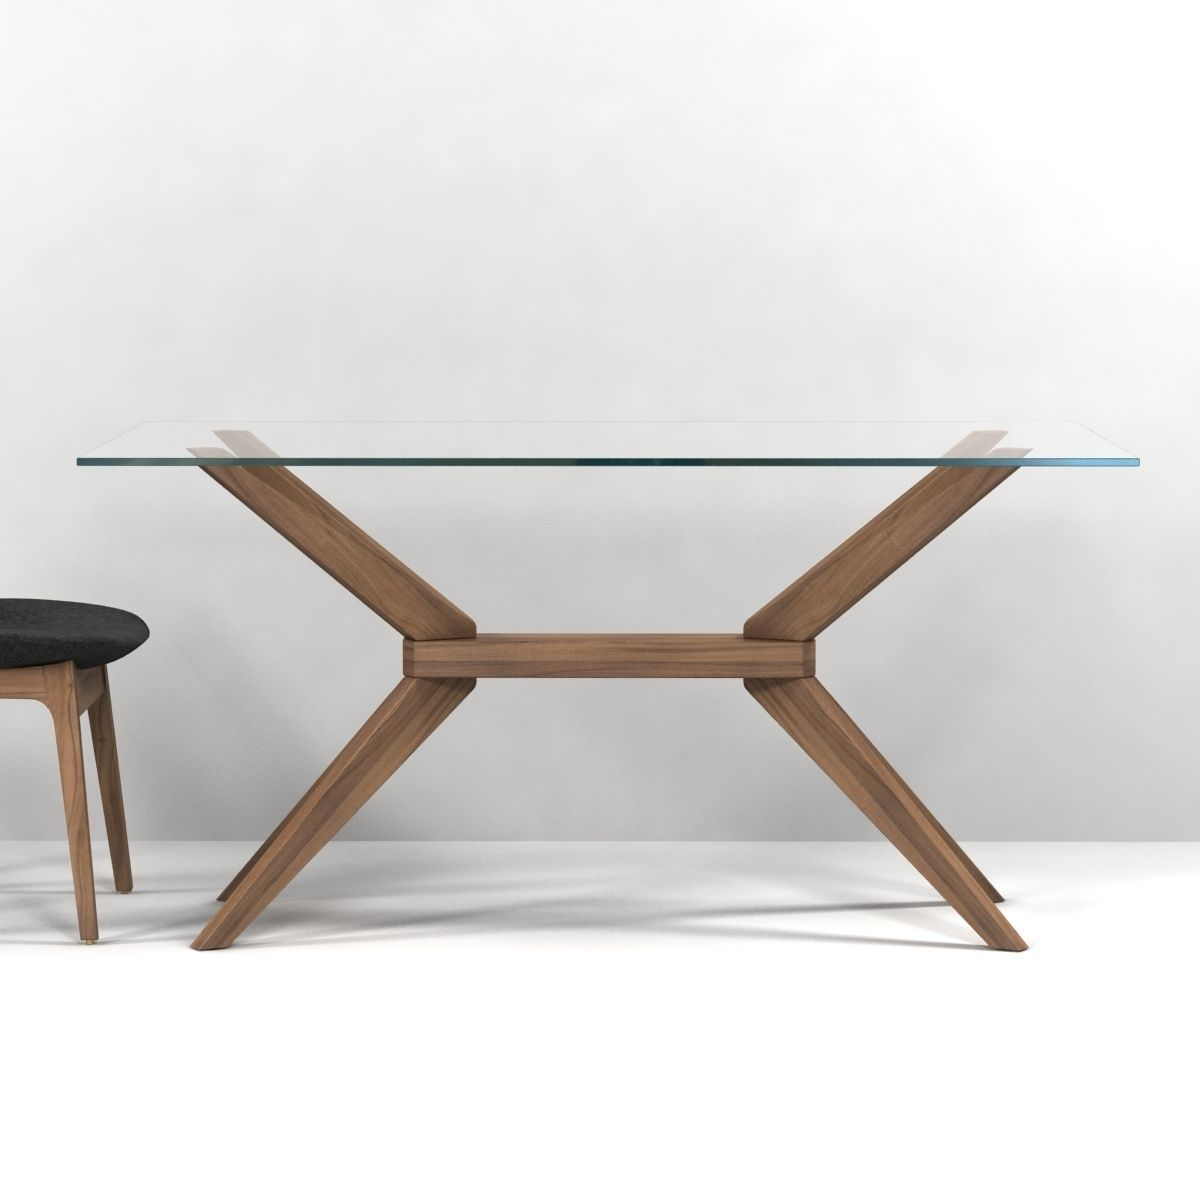 Magna glass dining table by inmod sohoconcept eiffel wood for New model wooden dining table